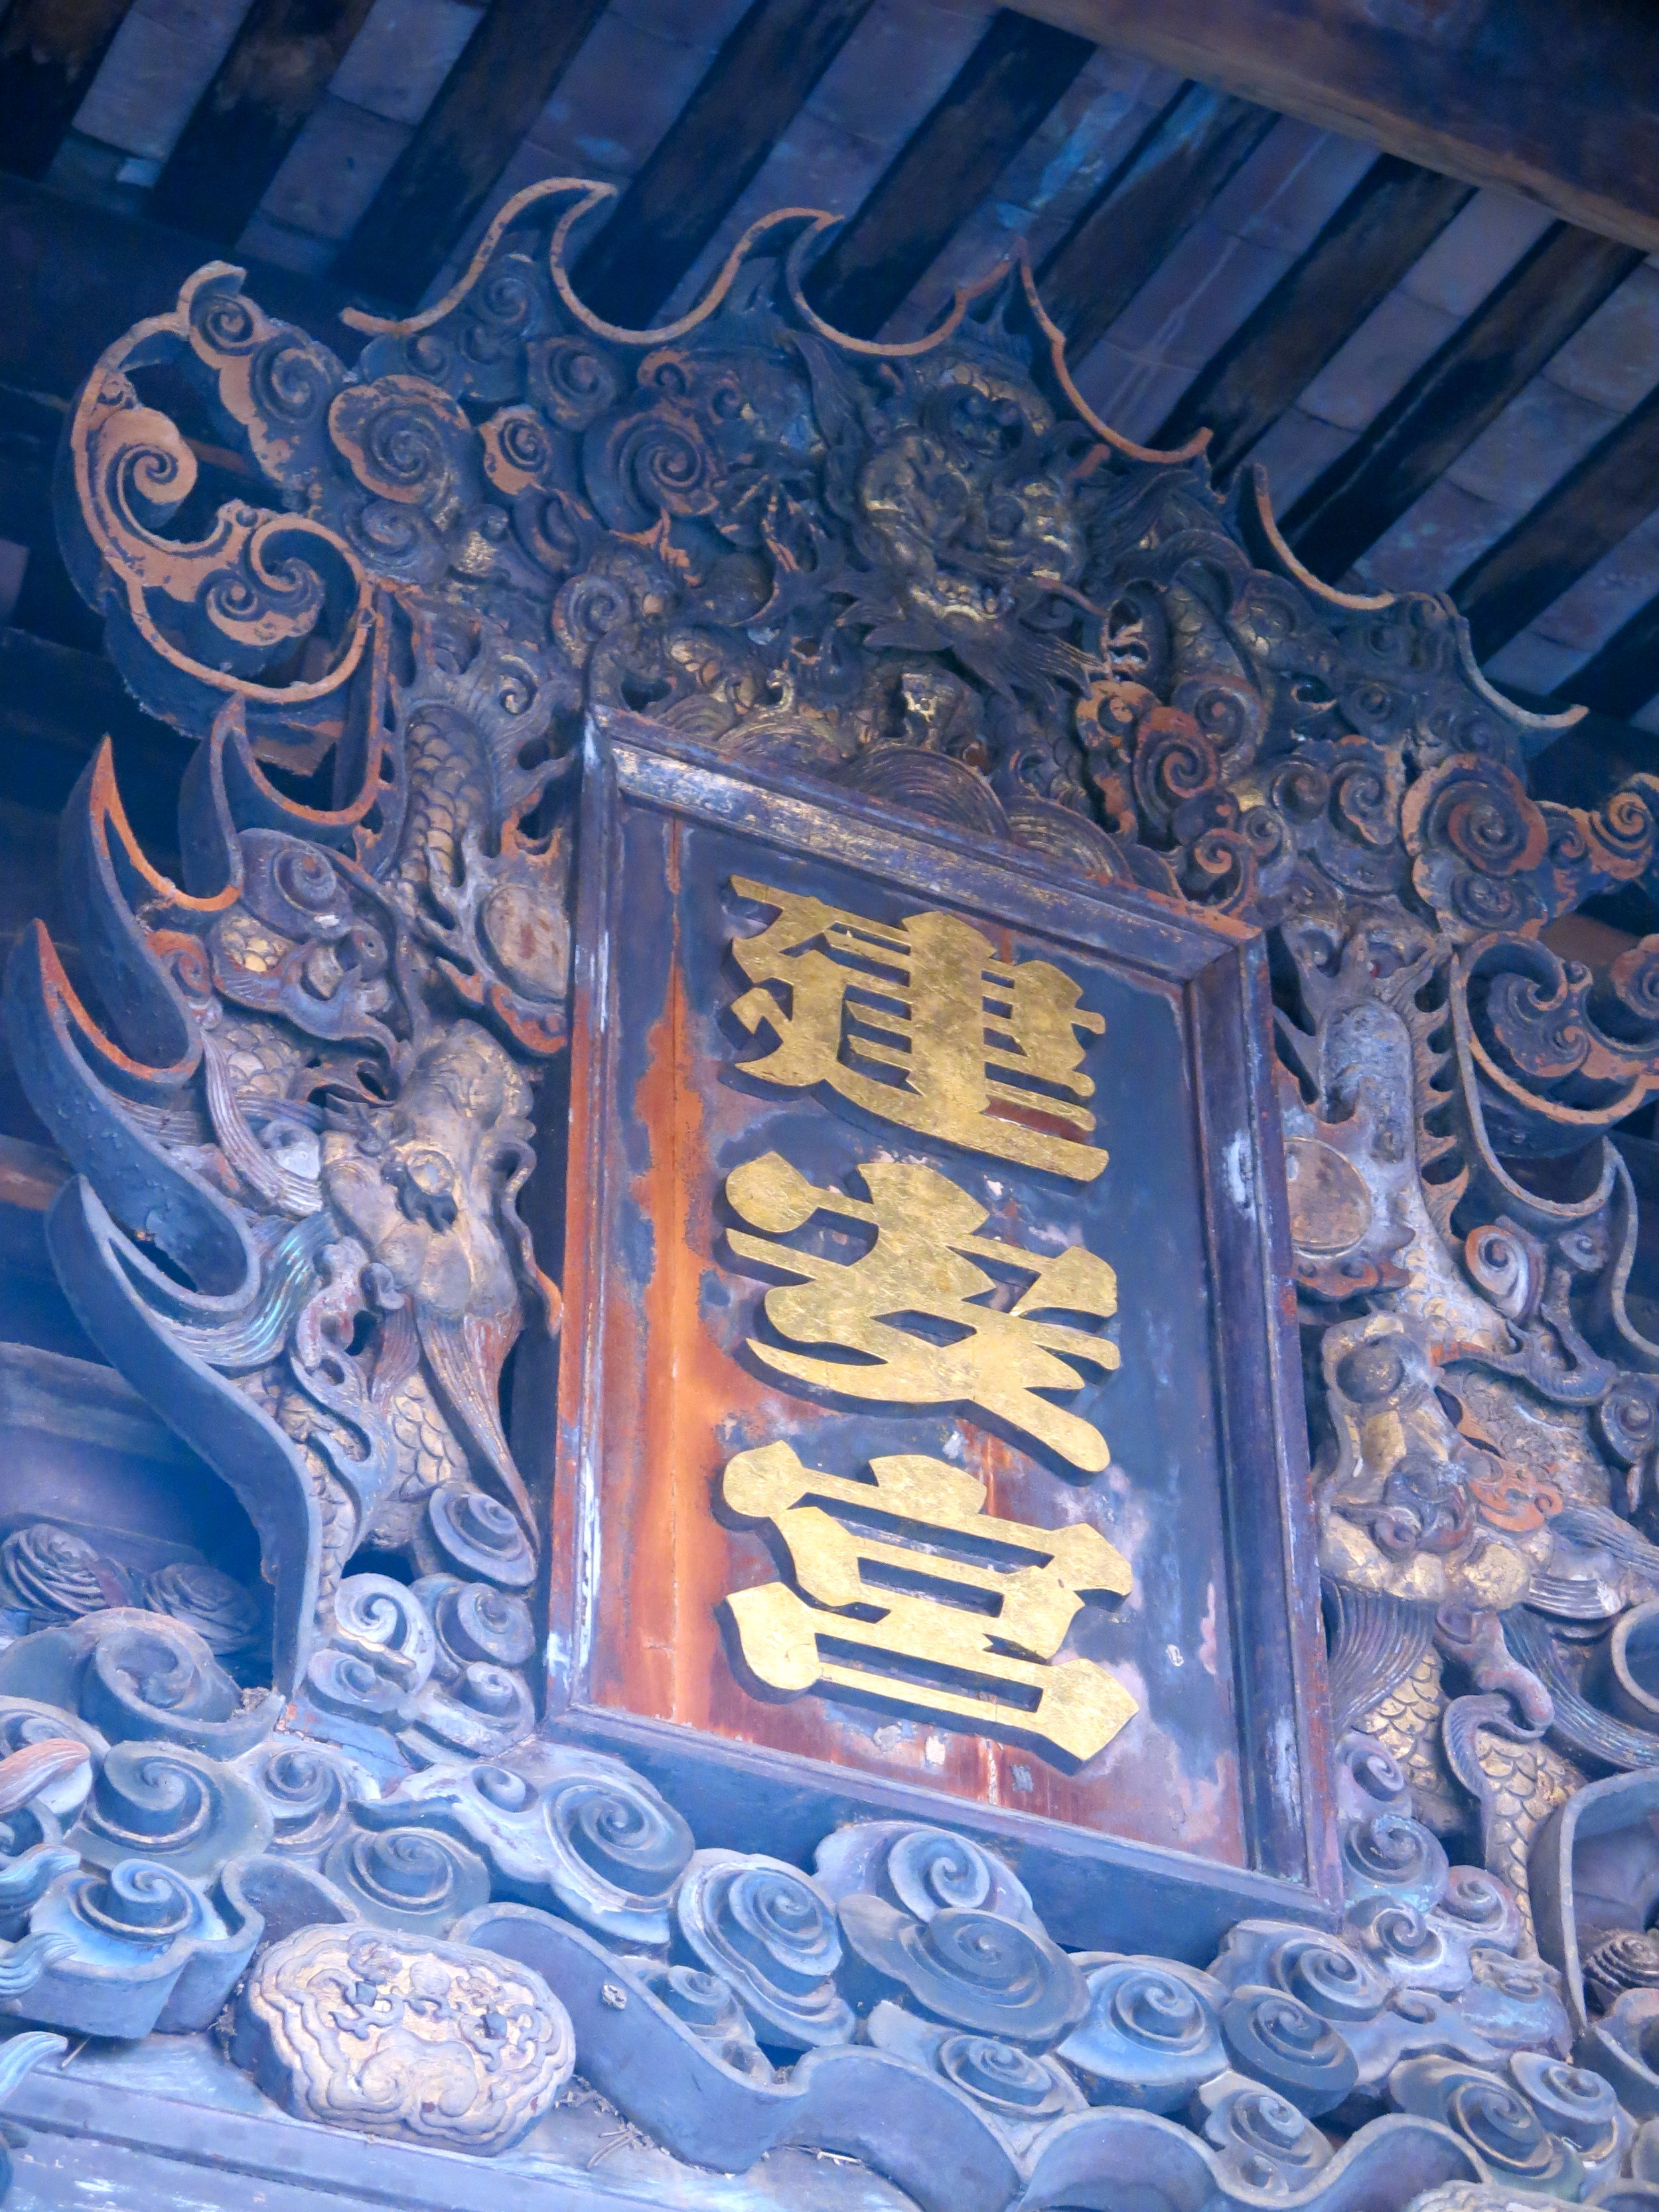 Wooden panel above the entrance of the Kuan Yin shrine